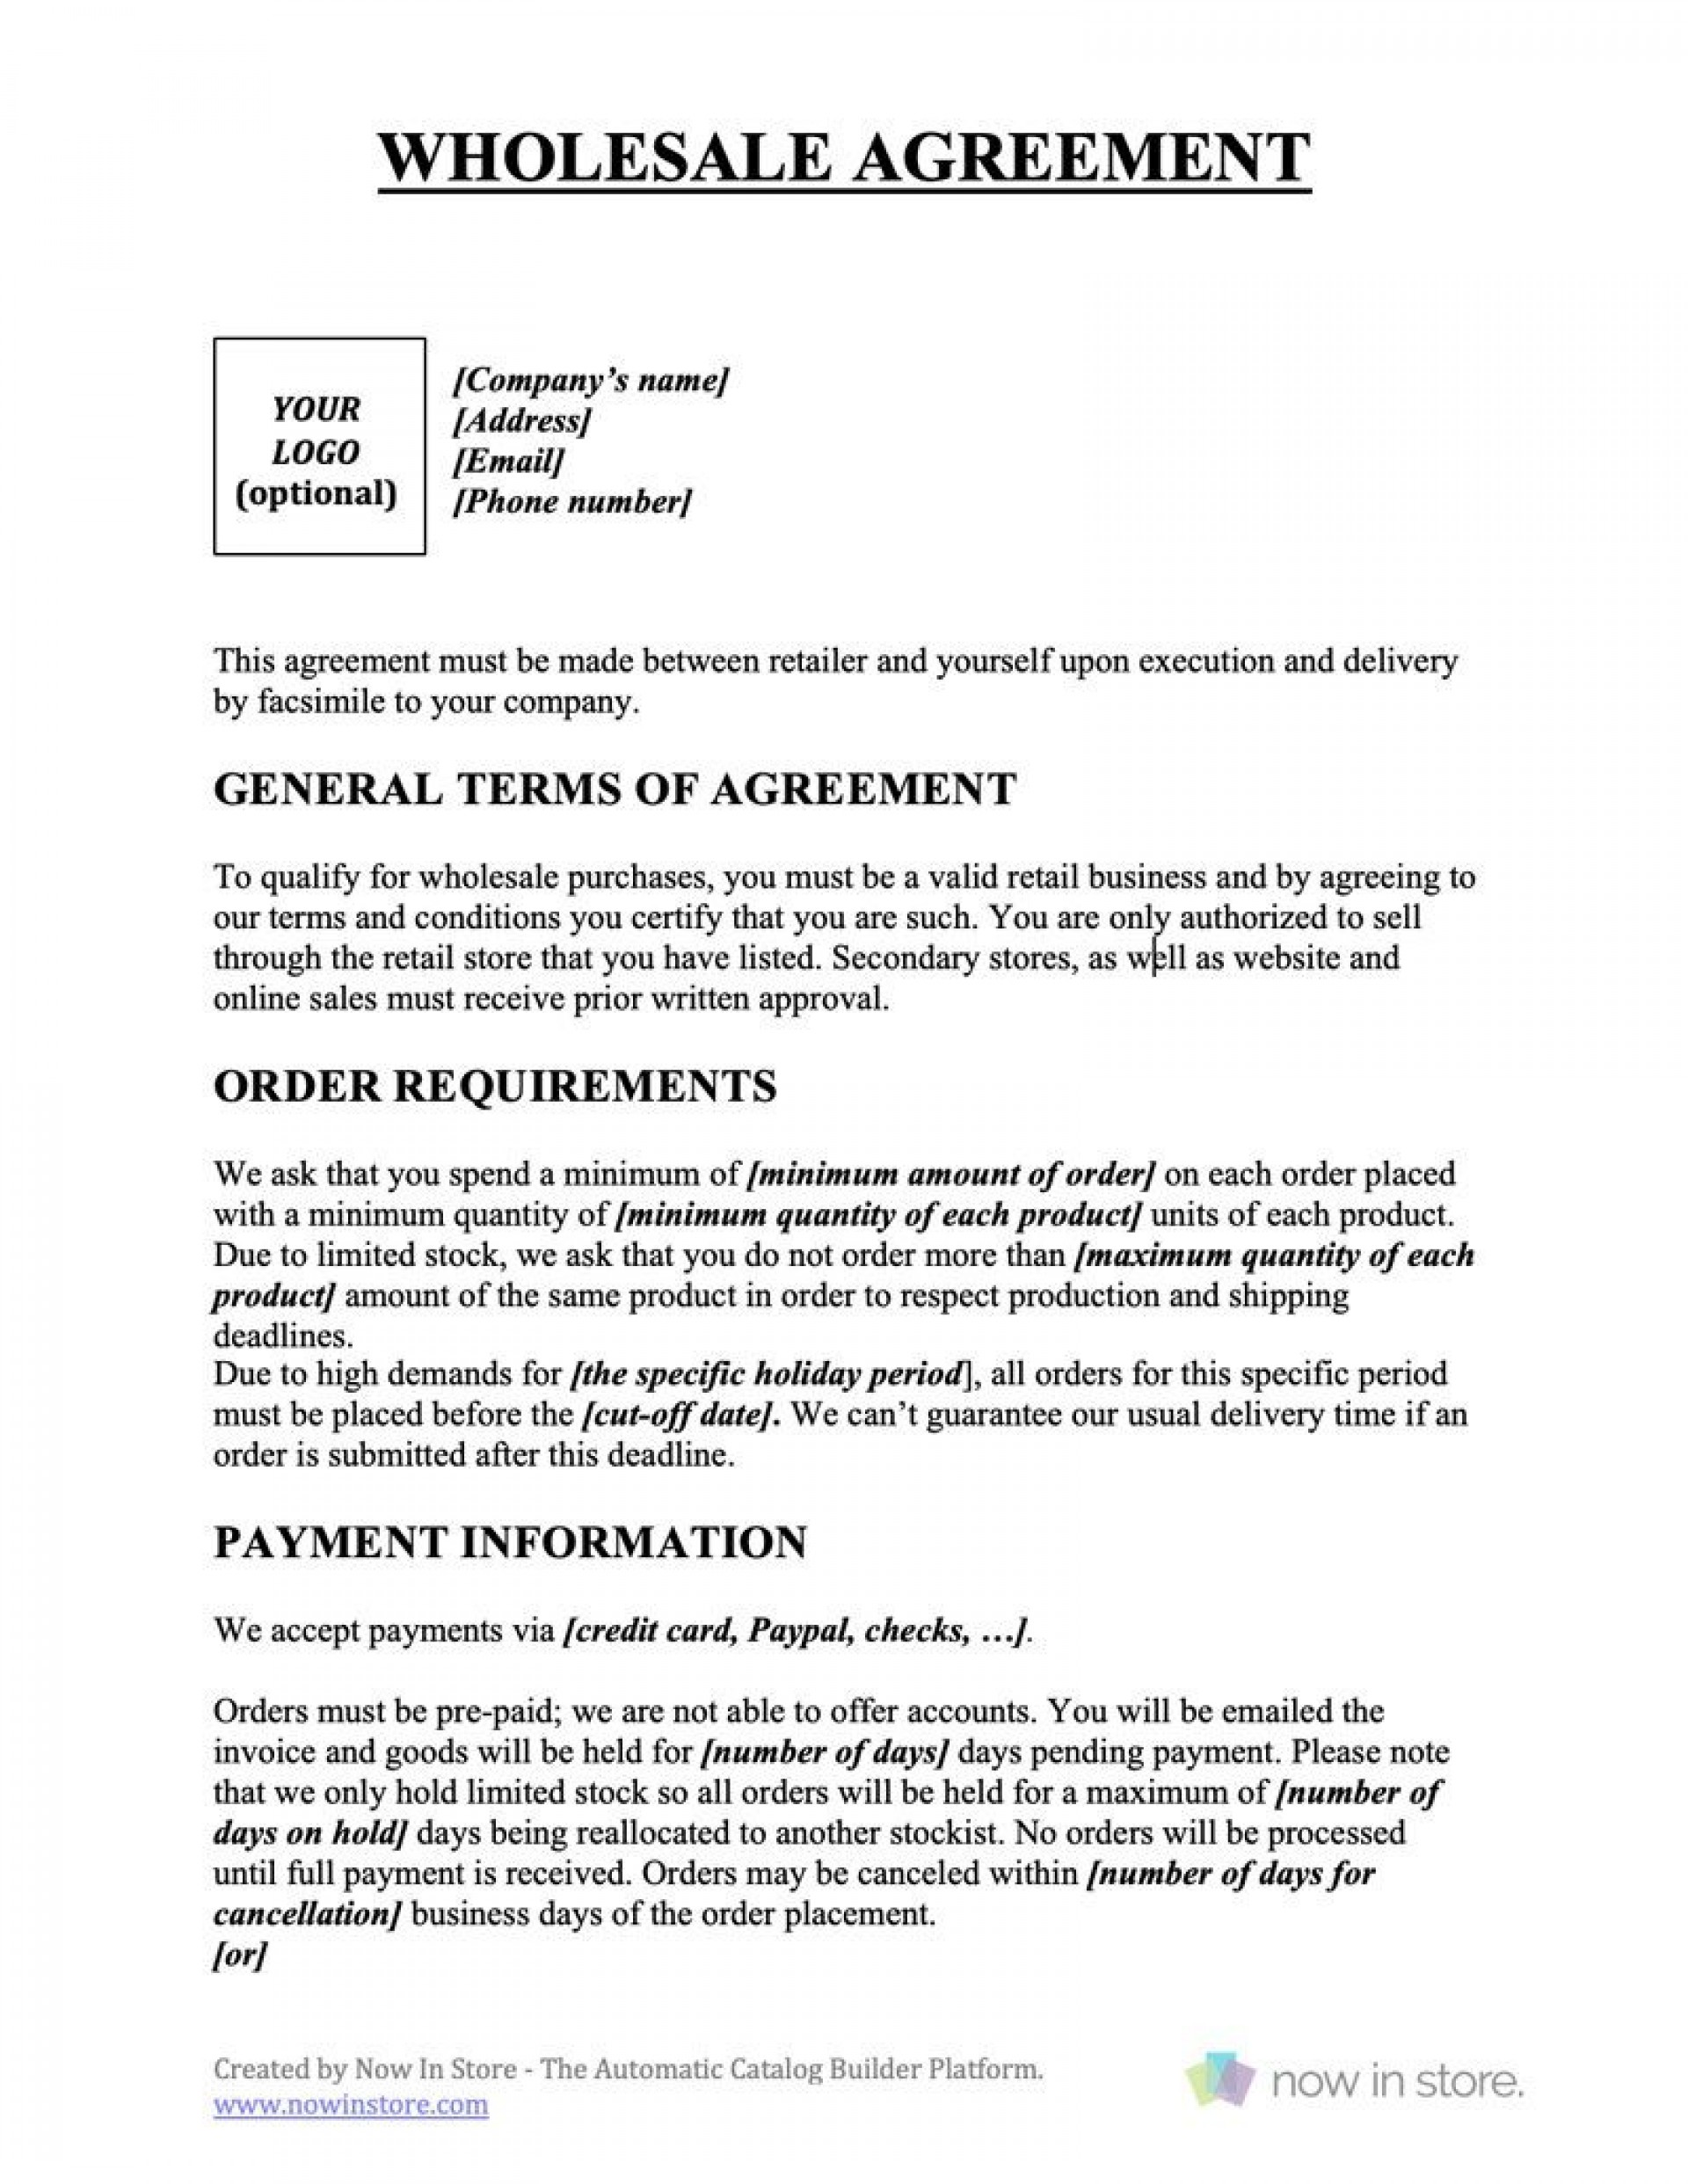 009 Marvelou Term Of Agreement Template Design  Service Contract Busines Uk1920